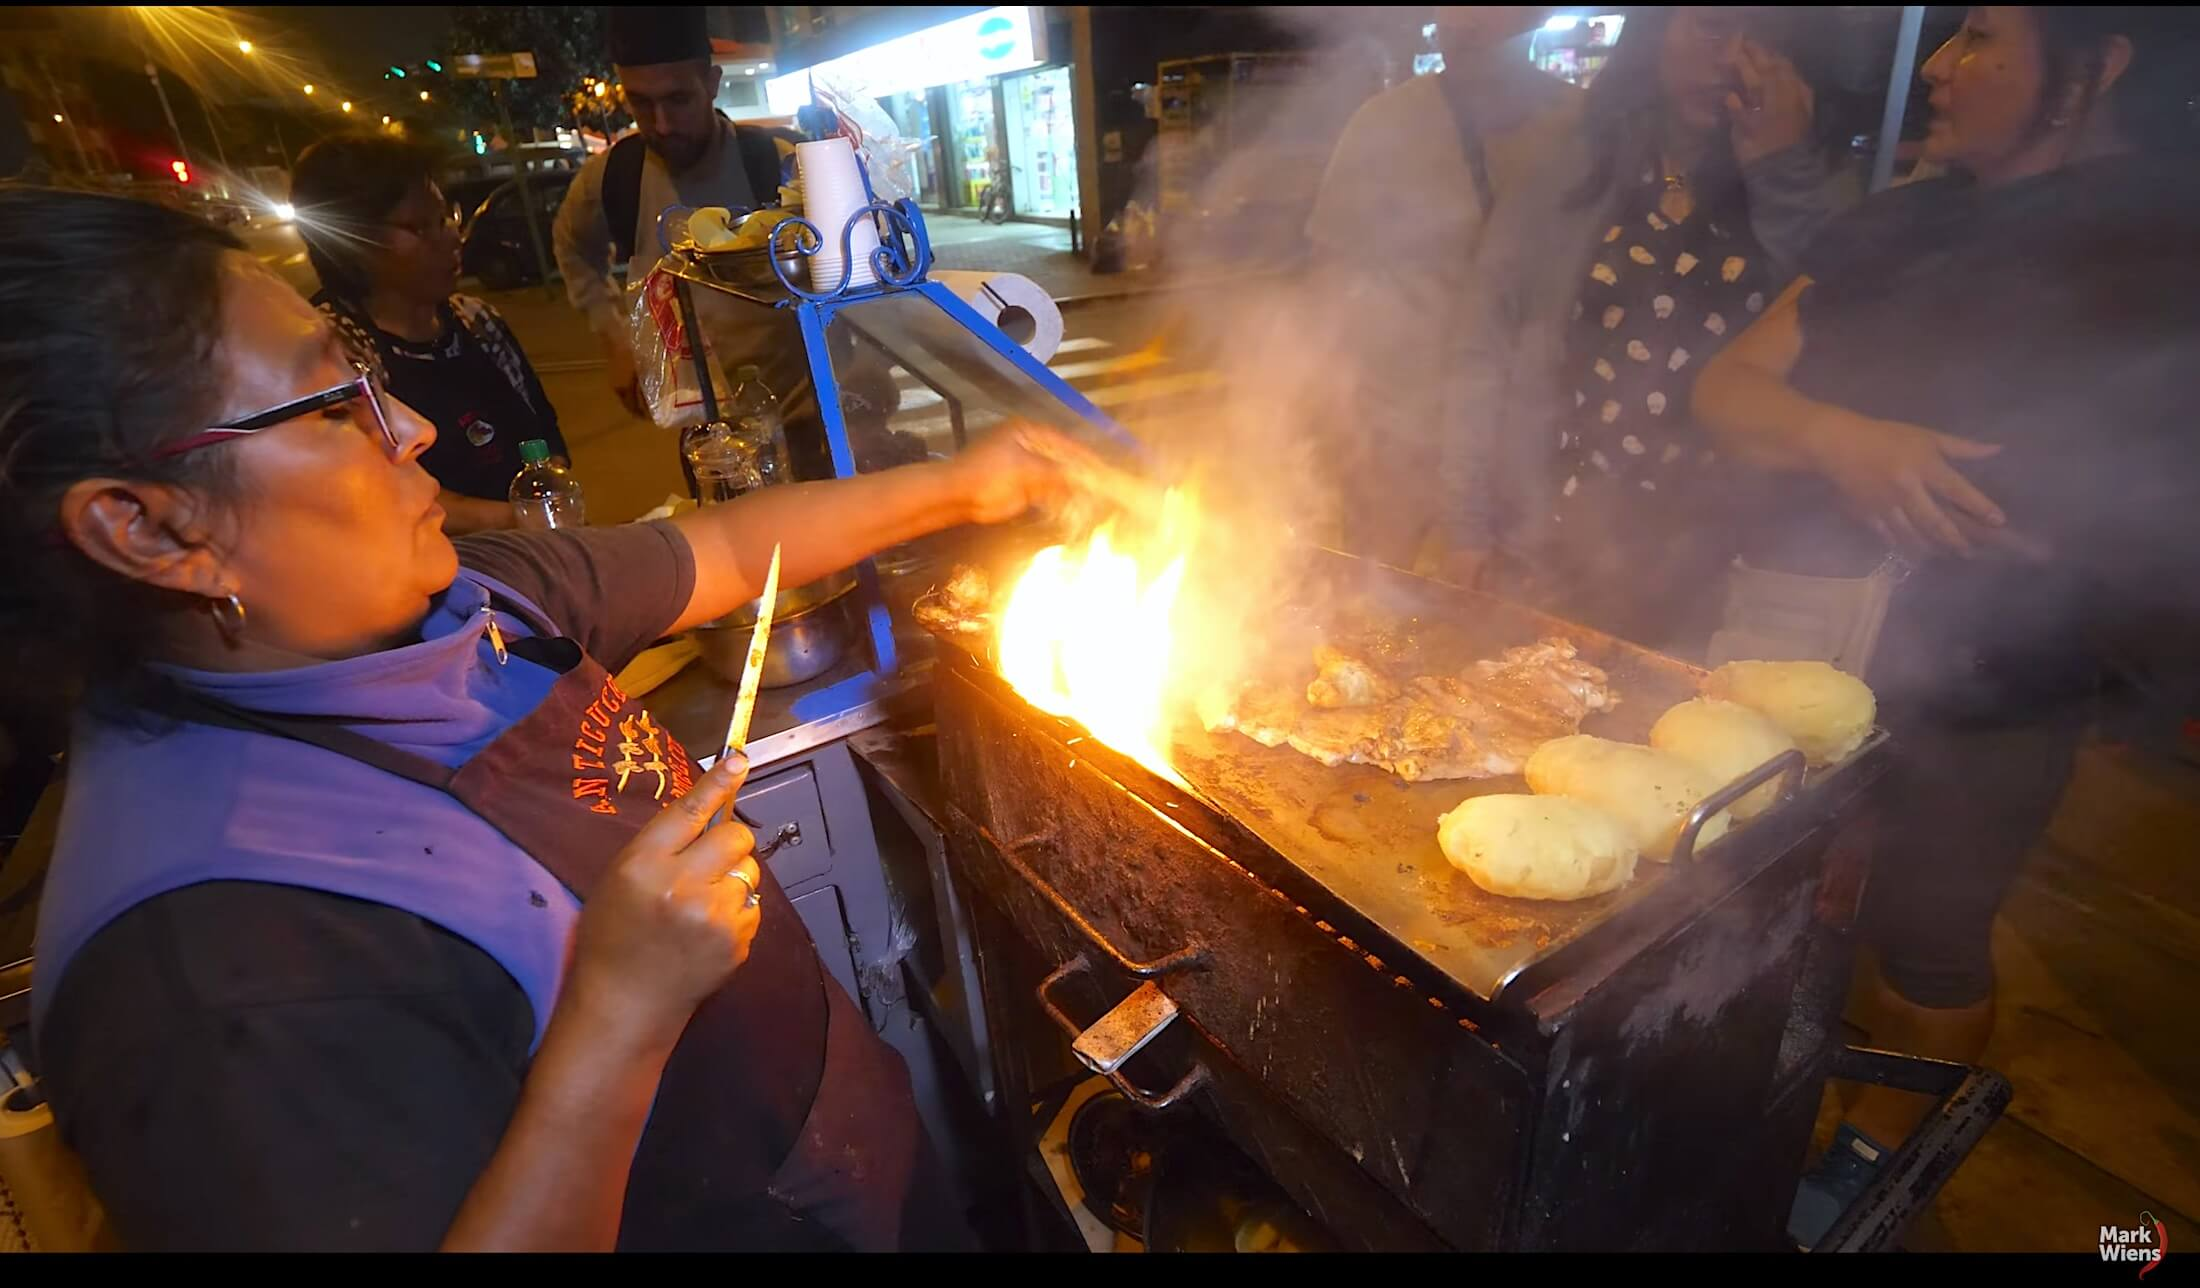 For beautiful displays of late night street food grilling, you need to visit Miraflores Anticuchos de Manuela